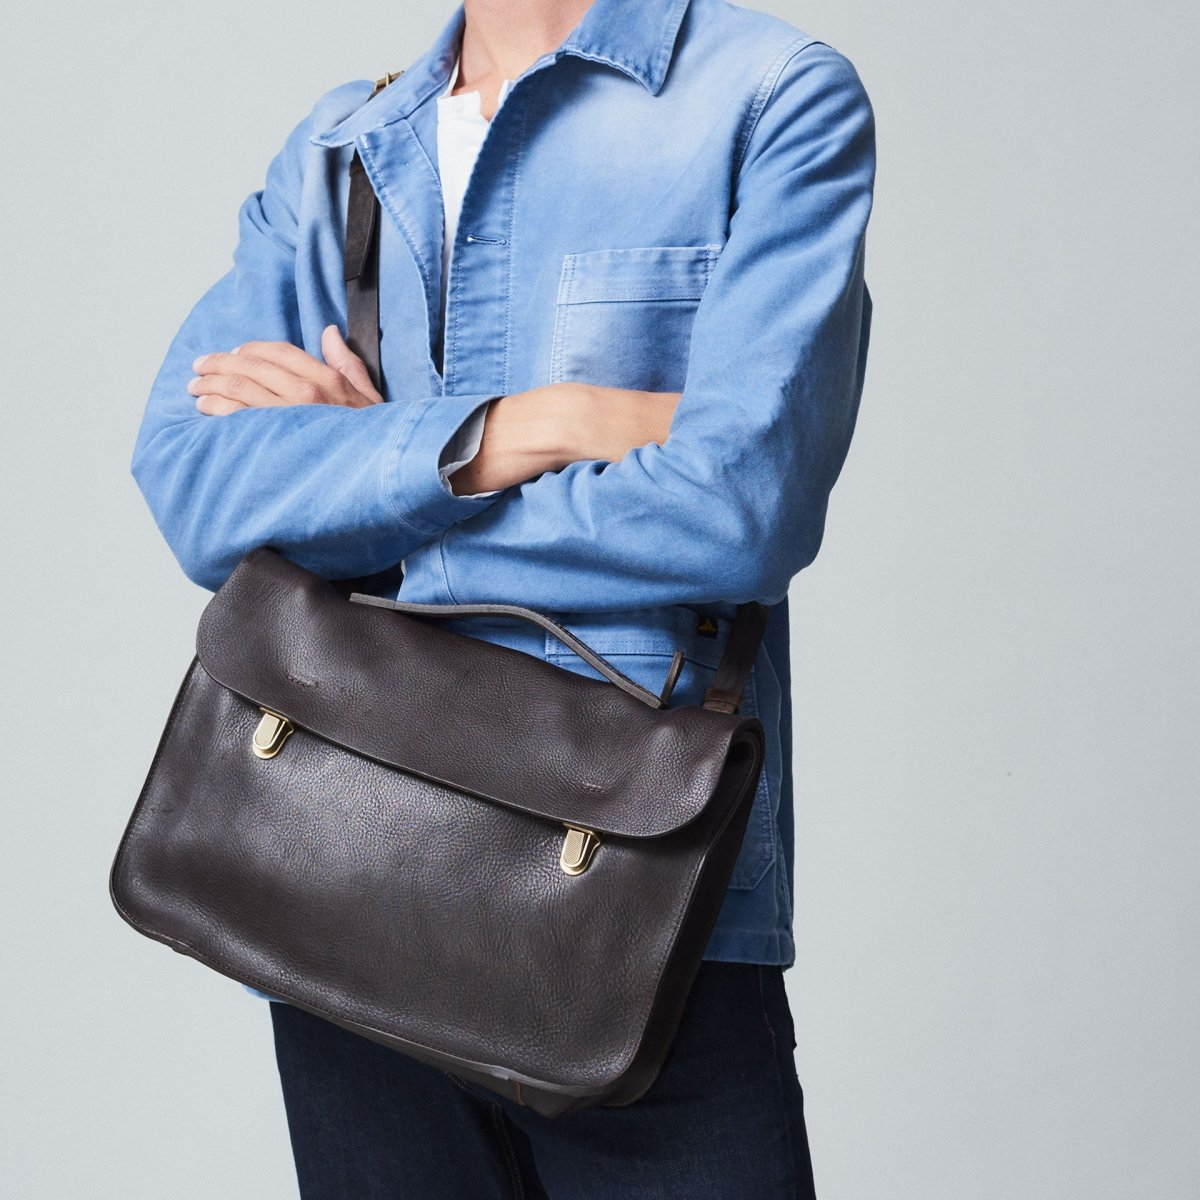 Groucho Leather Satchel - T Moro / E Pure (image n°5)